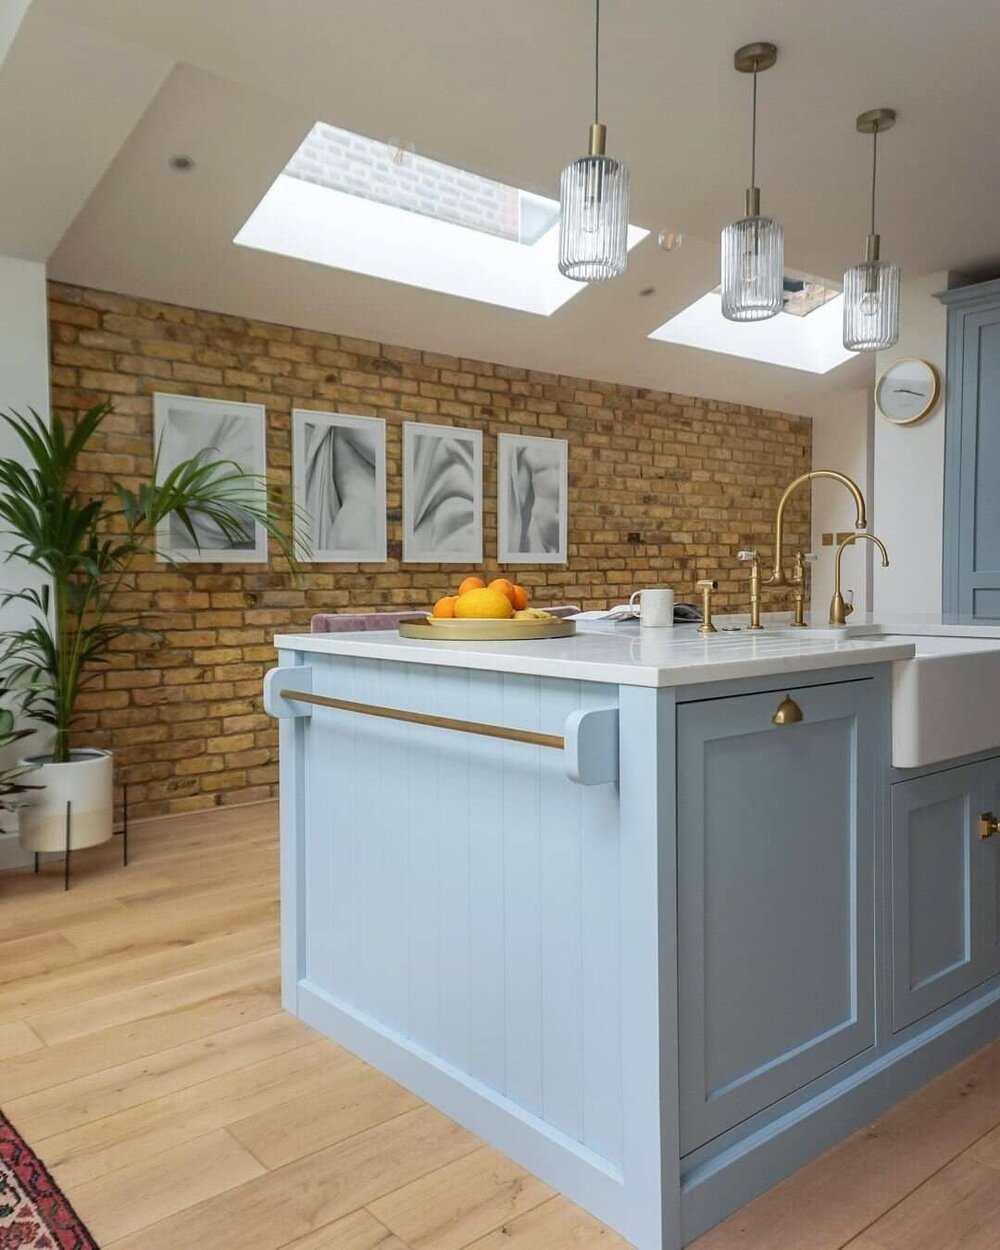 9 beautiful and achievable kitchen extension ideas   Fifi McGee